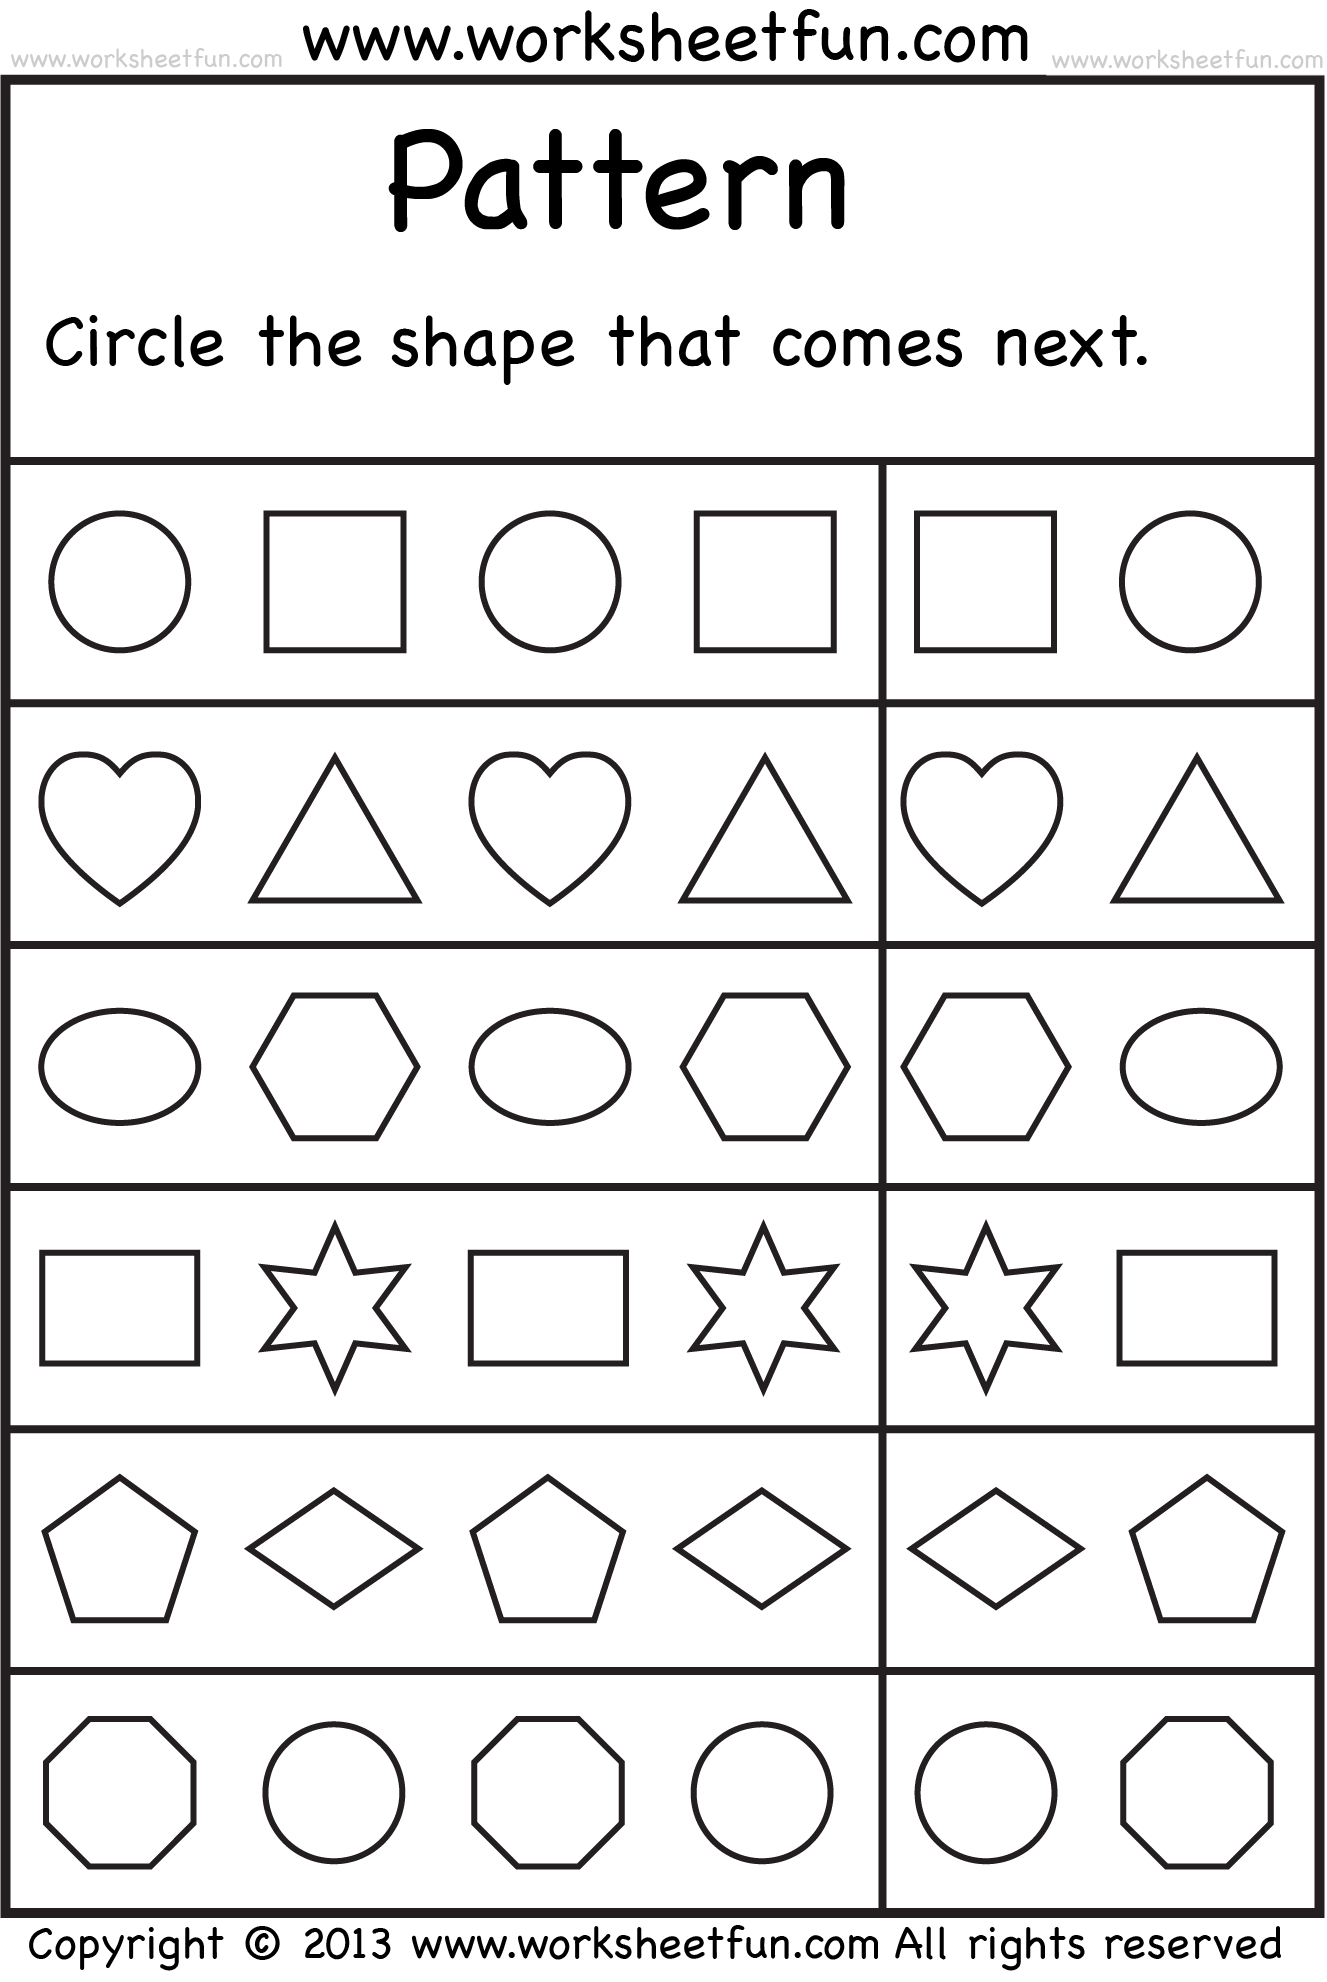 Weirdmailus  Wonderful  Images About School Worksheets On Pinterest  Number Words  With Outstanding  Images About School Worksheets On Pinterest  Number Words Alphabet Worksheets And Free Printable Kindergarten Worksheets With Delectable Final Consonant Worksheets Also Simple Percentage Worksheets In Addition  Grade Multiplication Worksheets And Remedial Reading Worksheets As Well As Game Worksheet Additionally Numbers  Worksheets From Pinterestcom With Weirdmailus  Outstanding  Images About School Worksheets On Pinterest  Number Words  With Delectable  Images About School Worksheets On Pinterest  Number Words Alphabet Worksheets And Free Printable Kindergarten Worksheets And Wonderful Final Consonant Worksheets Also Simple Percentage Worksheets In Addition  Grade Multiplication Worksheets From Pinterestcom